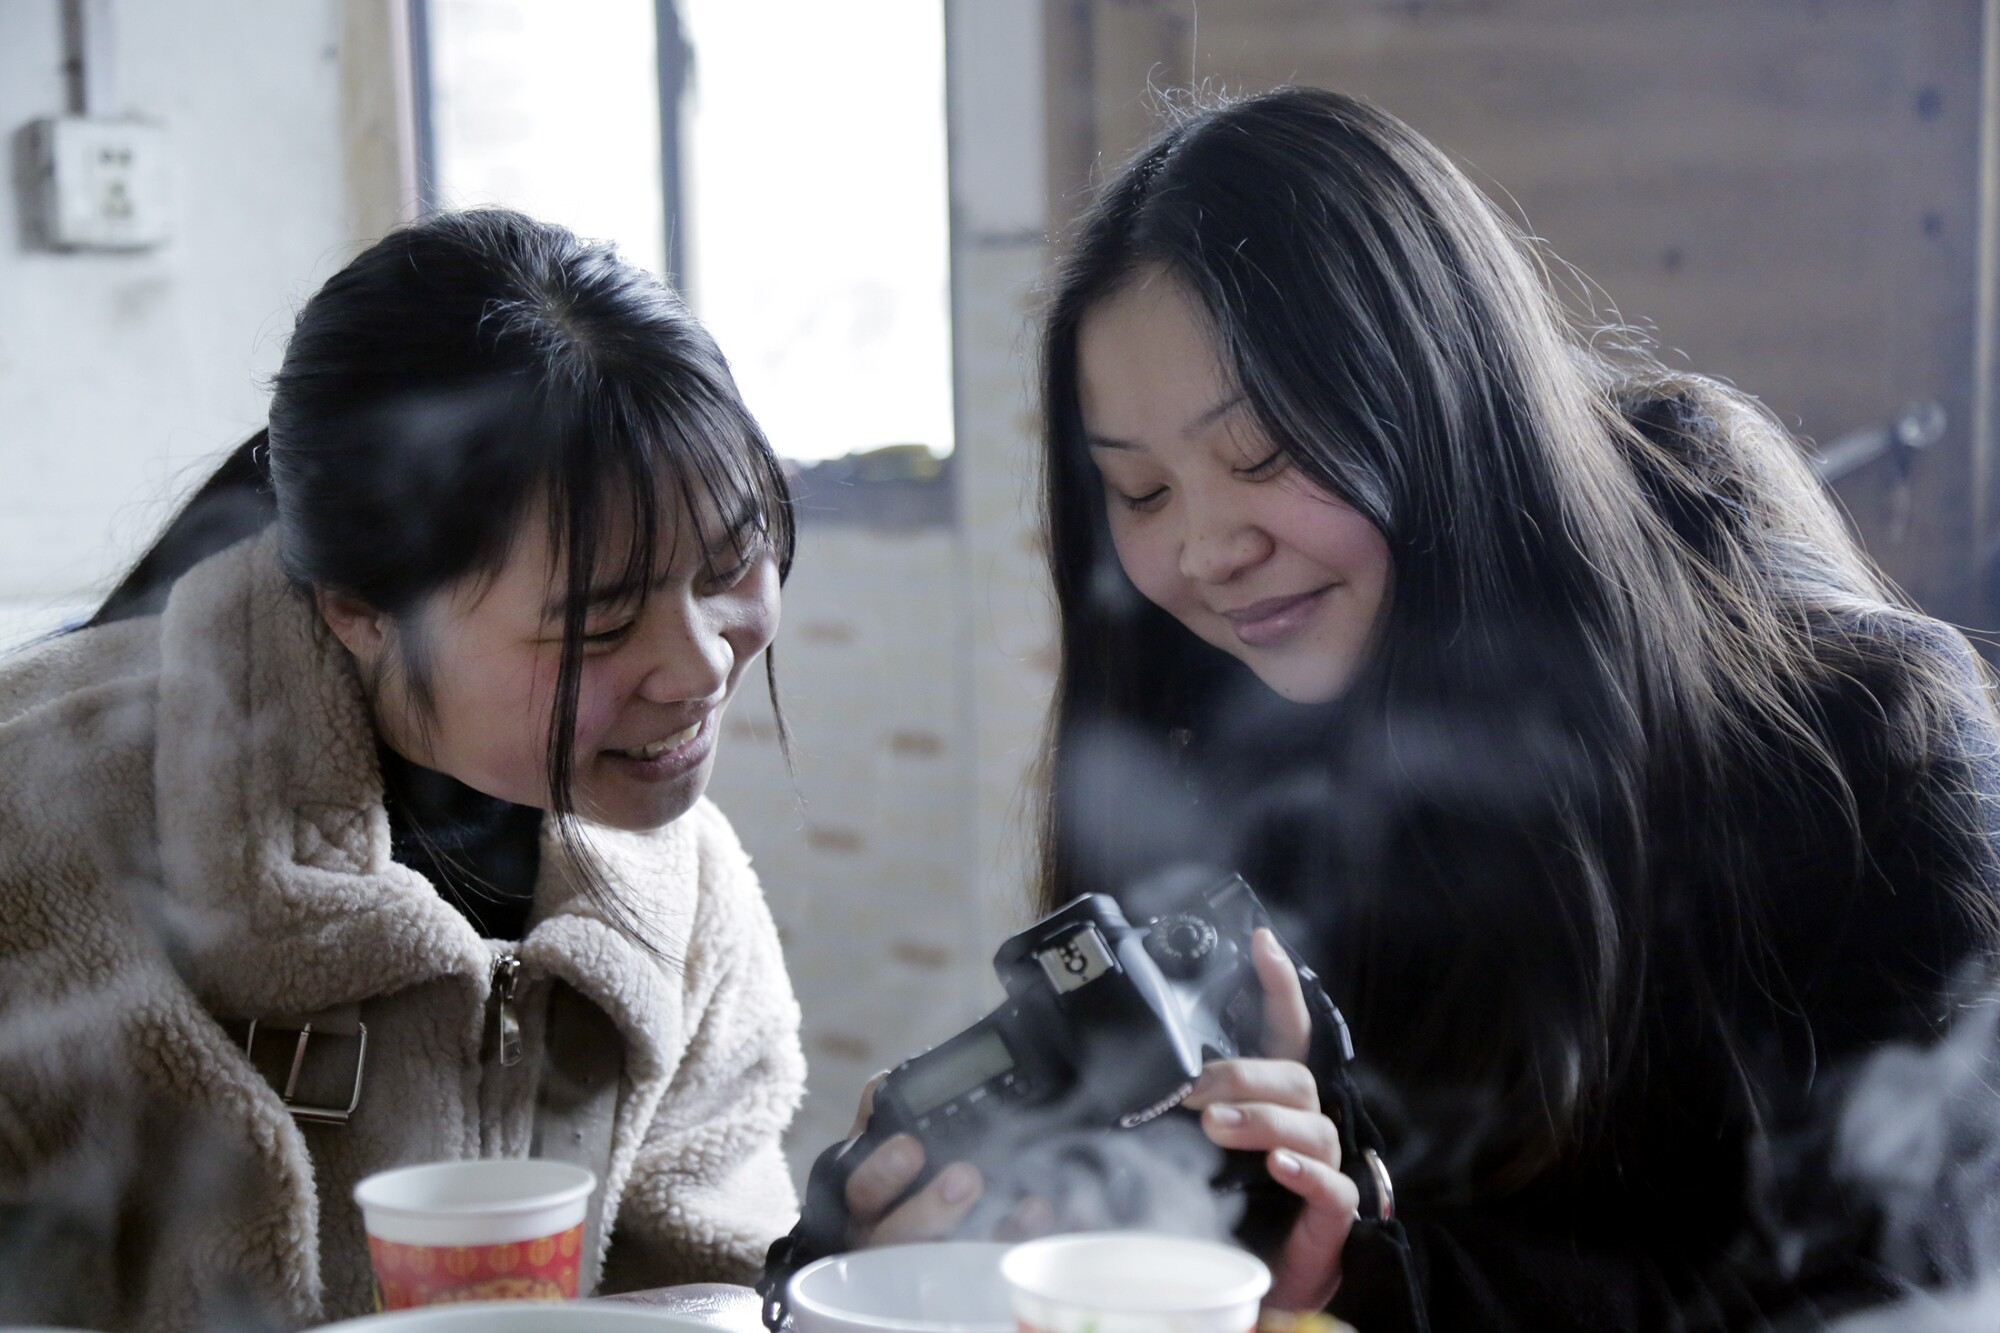 Esther Frederick shows her identical twin, Zeng Shuangjie, photos she took with her camera. Esther is interested in photography, art, baking and fashion, while Shuangjie likes badminton, pingpong, music and writing Chinese characters. The girls were separated when they were toddlers.